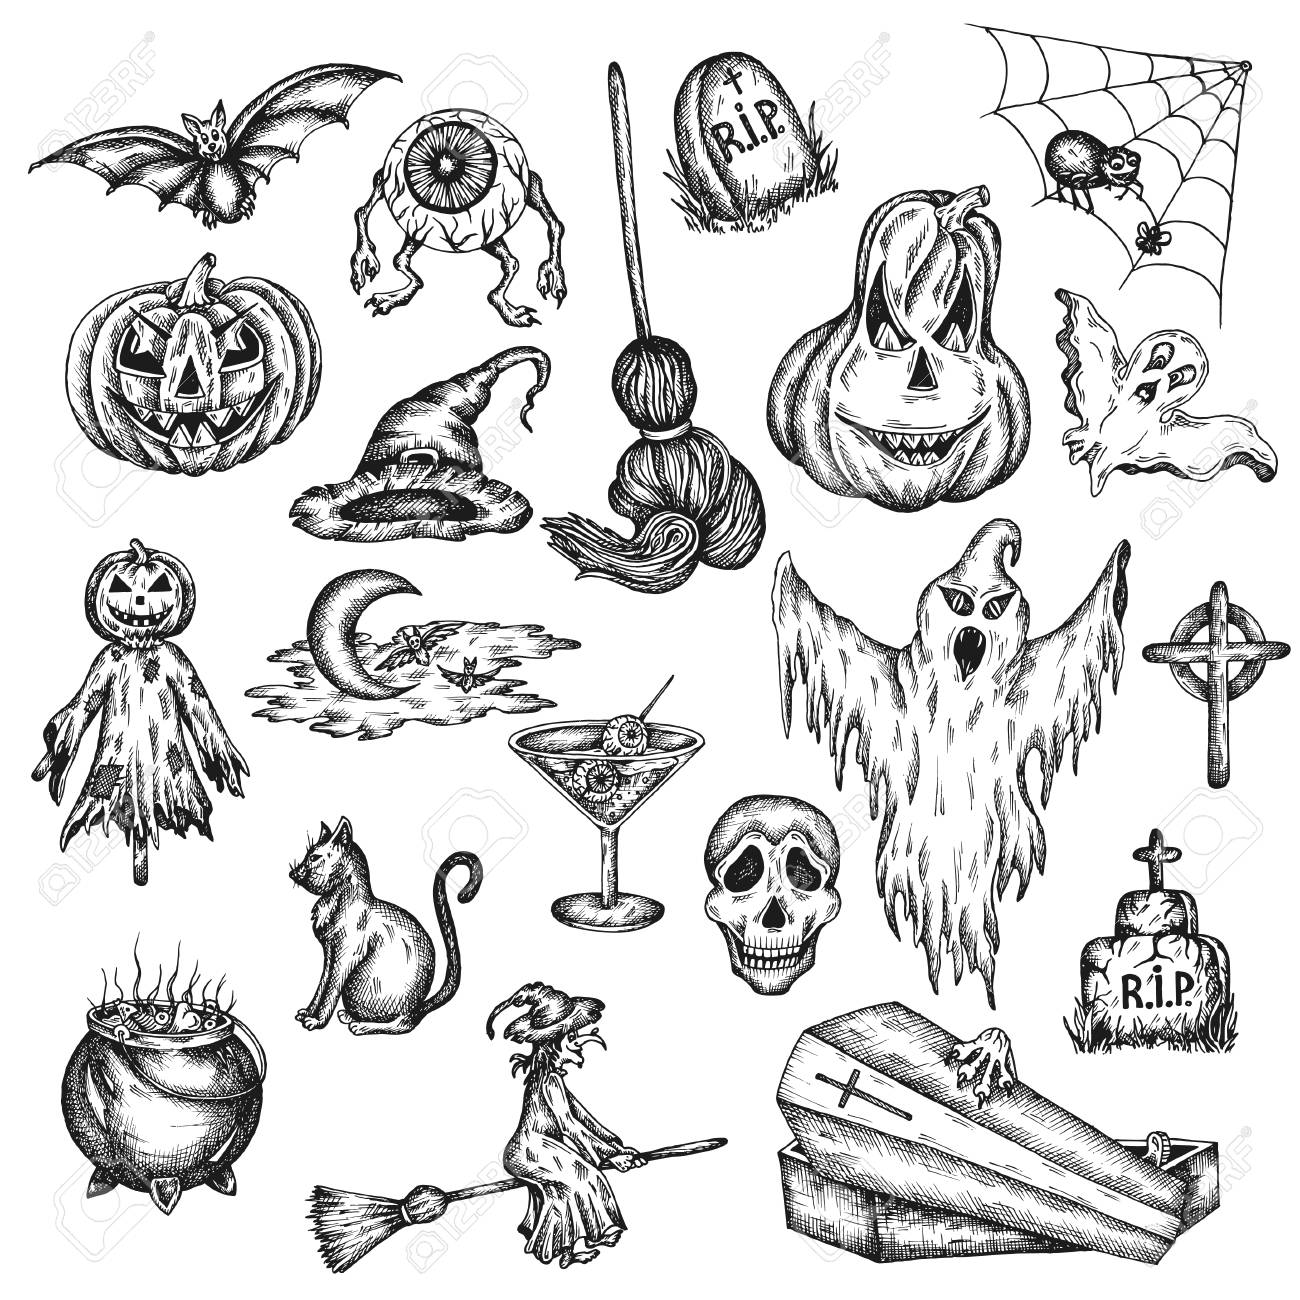 Halloween Holiday Cartoon Horror Set Design Of Scary Halloween Royalty Free Cliparts Vectors And Stock Illustration Image 110214213